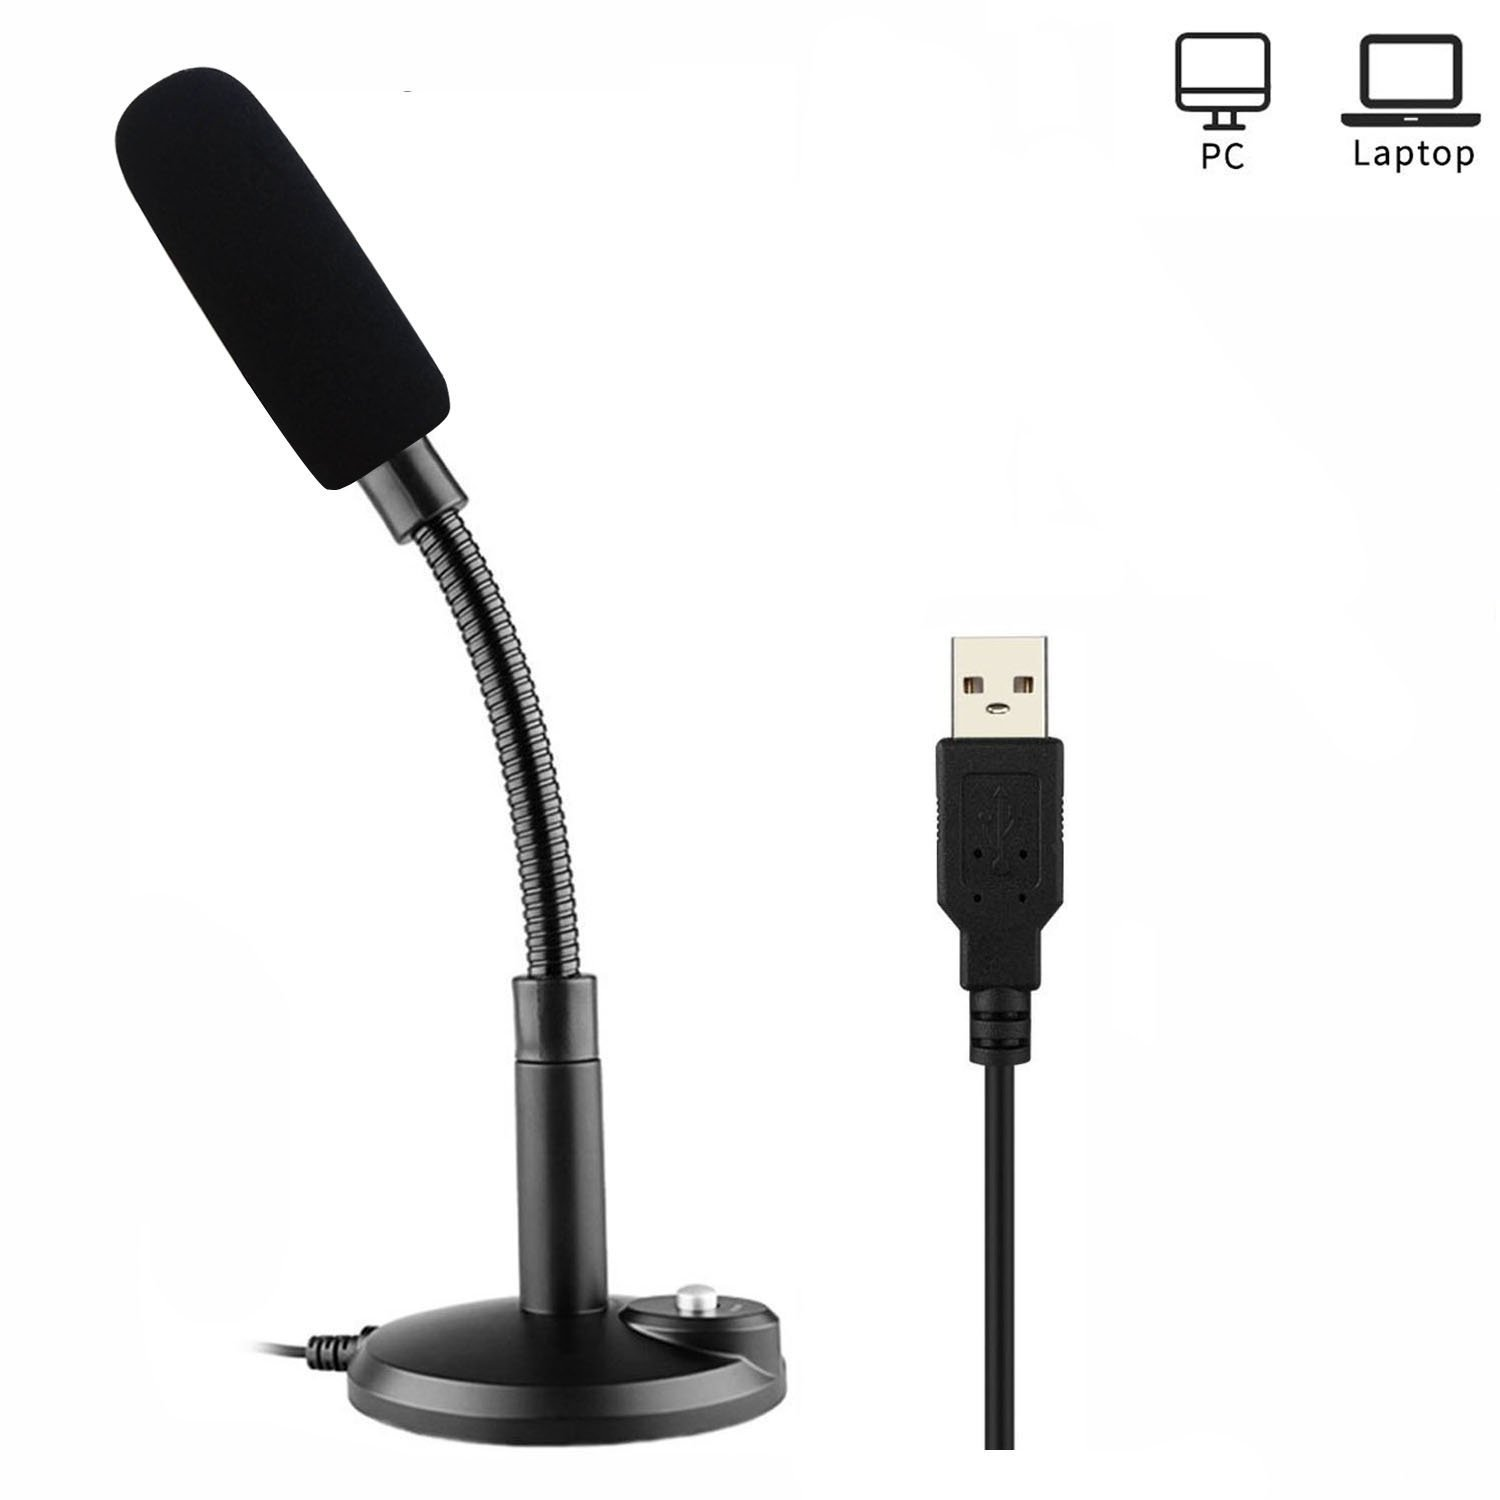 Professional USB Microphone,ZAFFIRO Computer Microphone Plug & Play Home Studio USB Condenser Microphone for PC/Desktop/Laptop/ Notebook,Recording for YouTube,Podcasting,Gaming(Windows/Mac) (black 09)